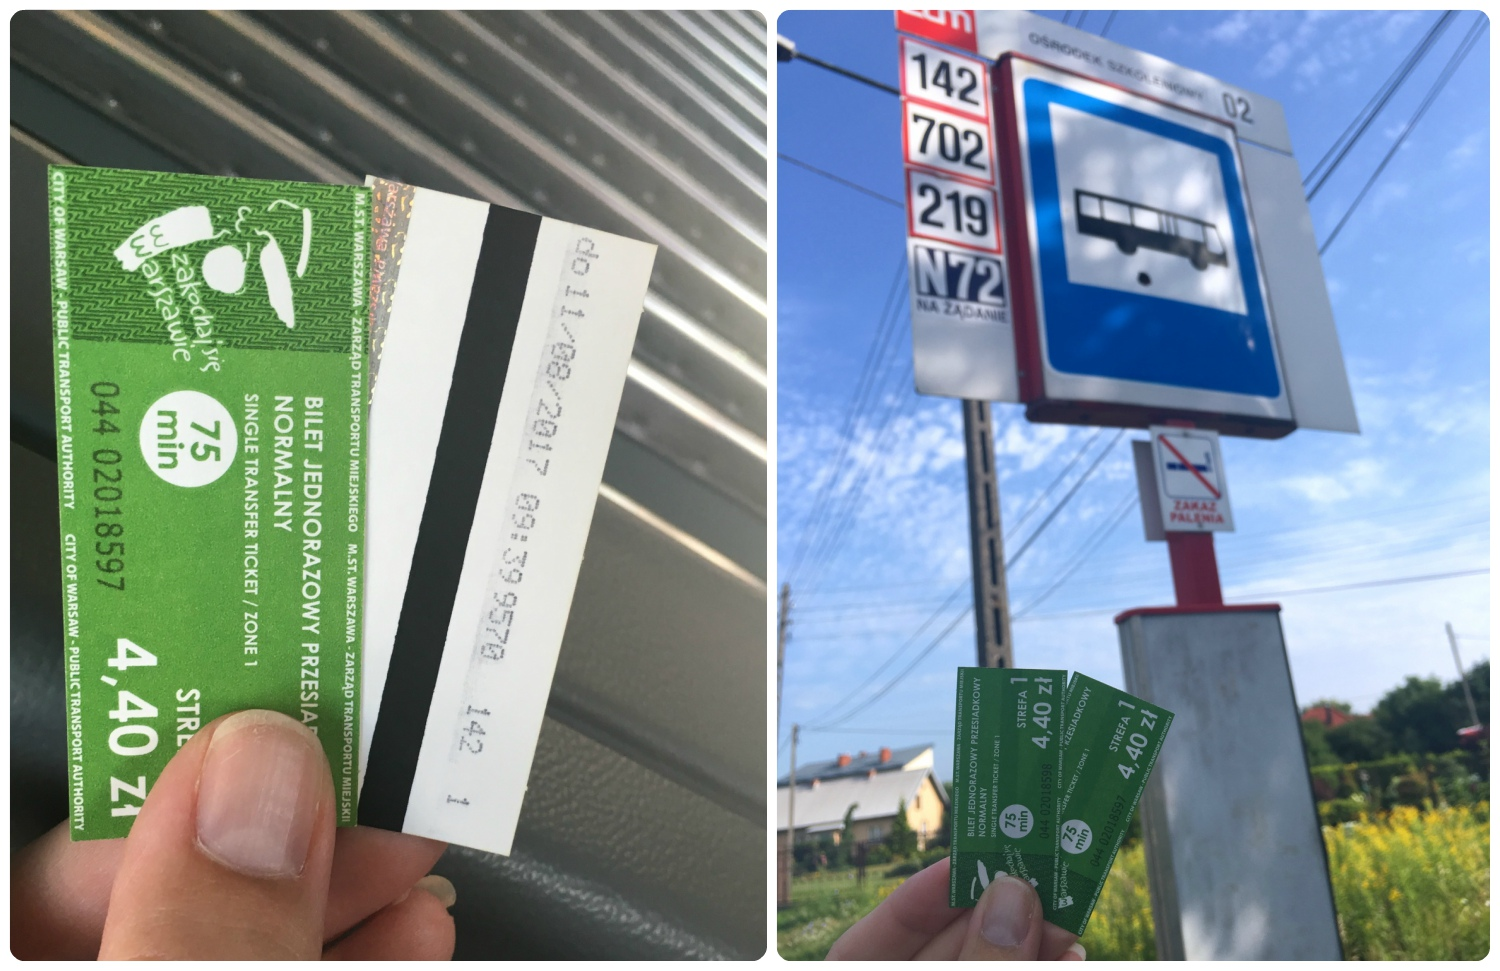 These tickets were purchased ahead of time at a storefront and then validated on the bus when we started our journey. You can see the stamped validation on the back of the ticket in the left image.